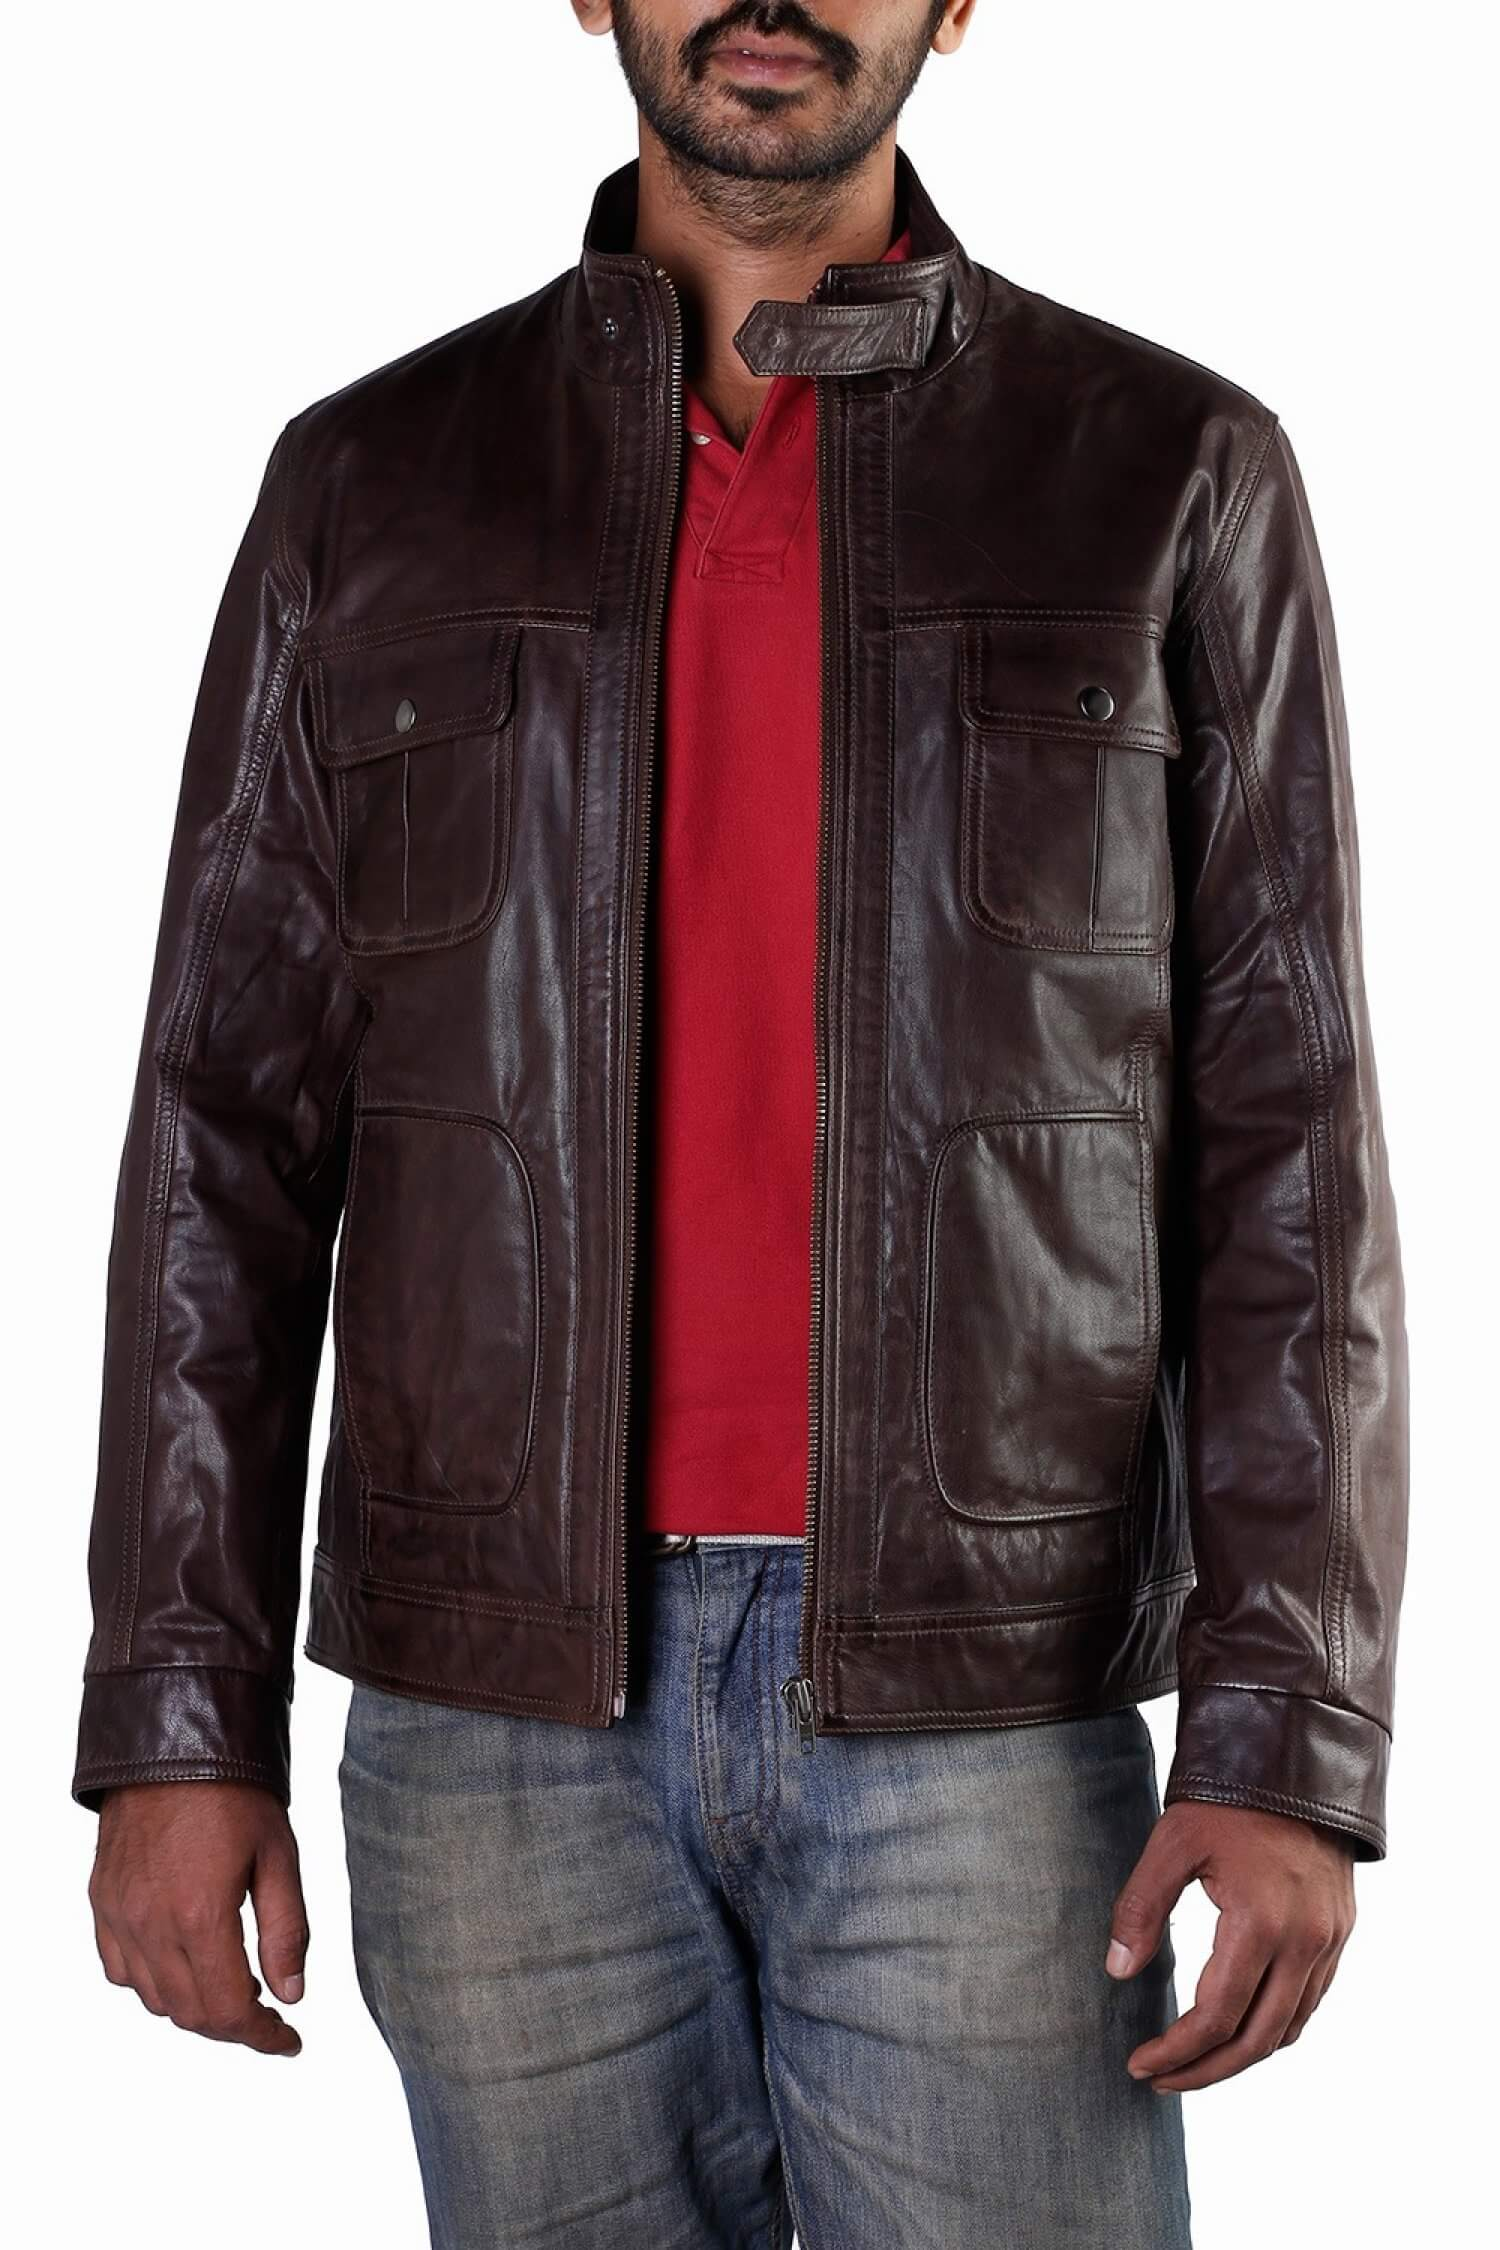 Theo&Ash - Buy men's leather jackets online, field leather jacket ...